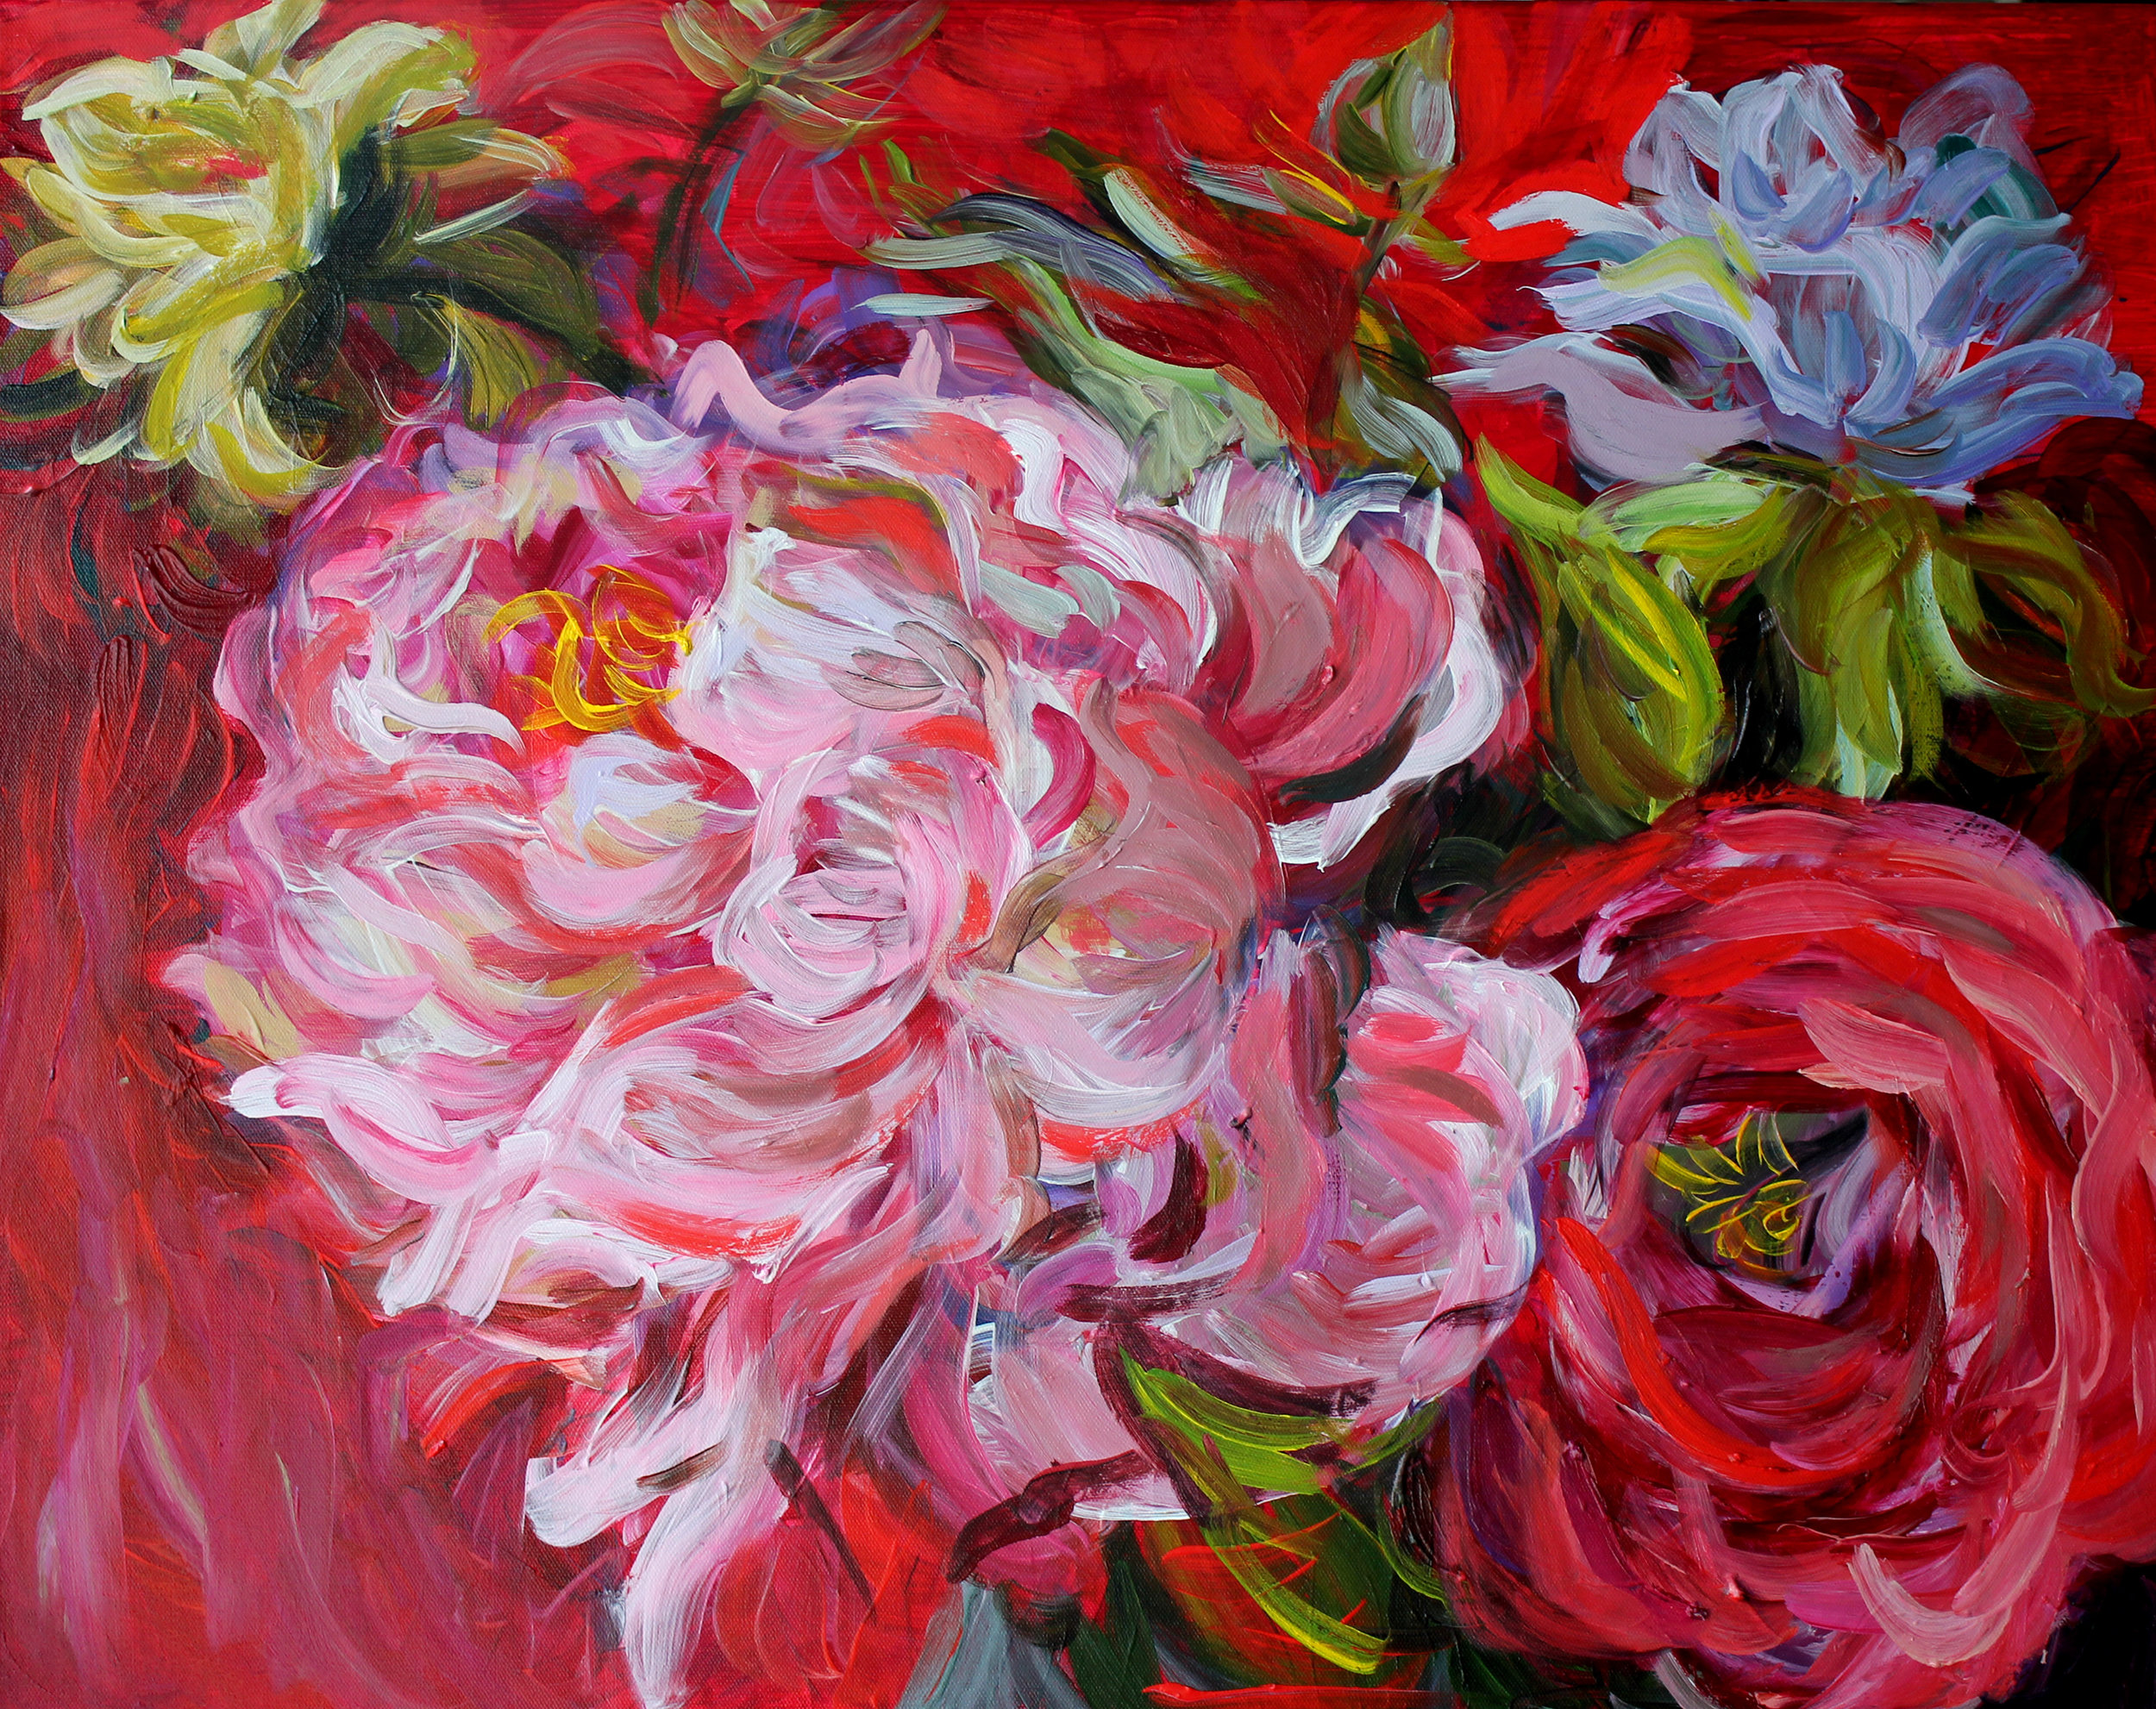 Peonies on Red 24x30 (sold)